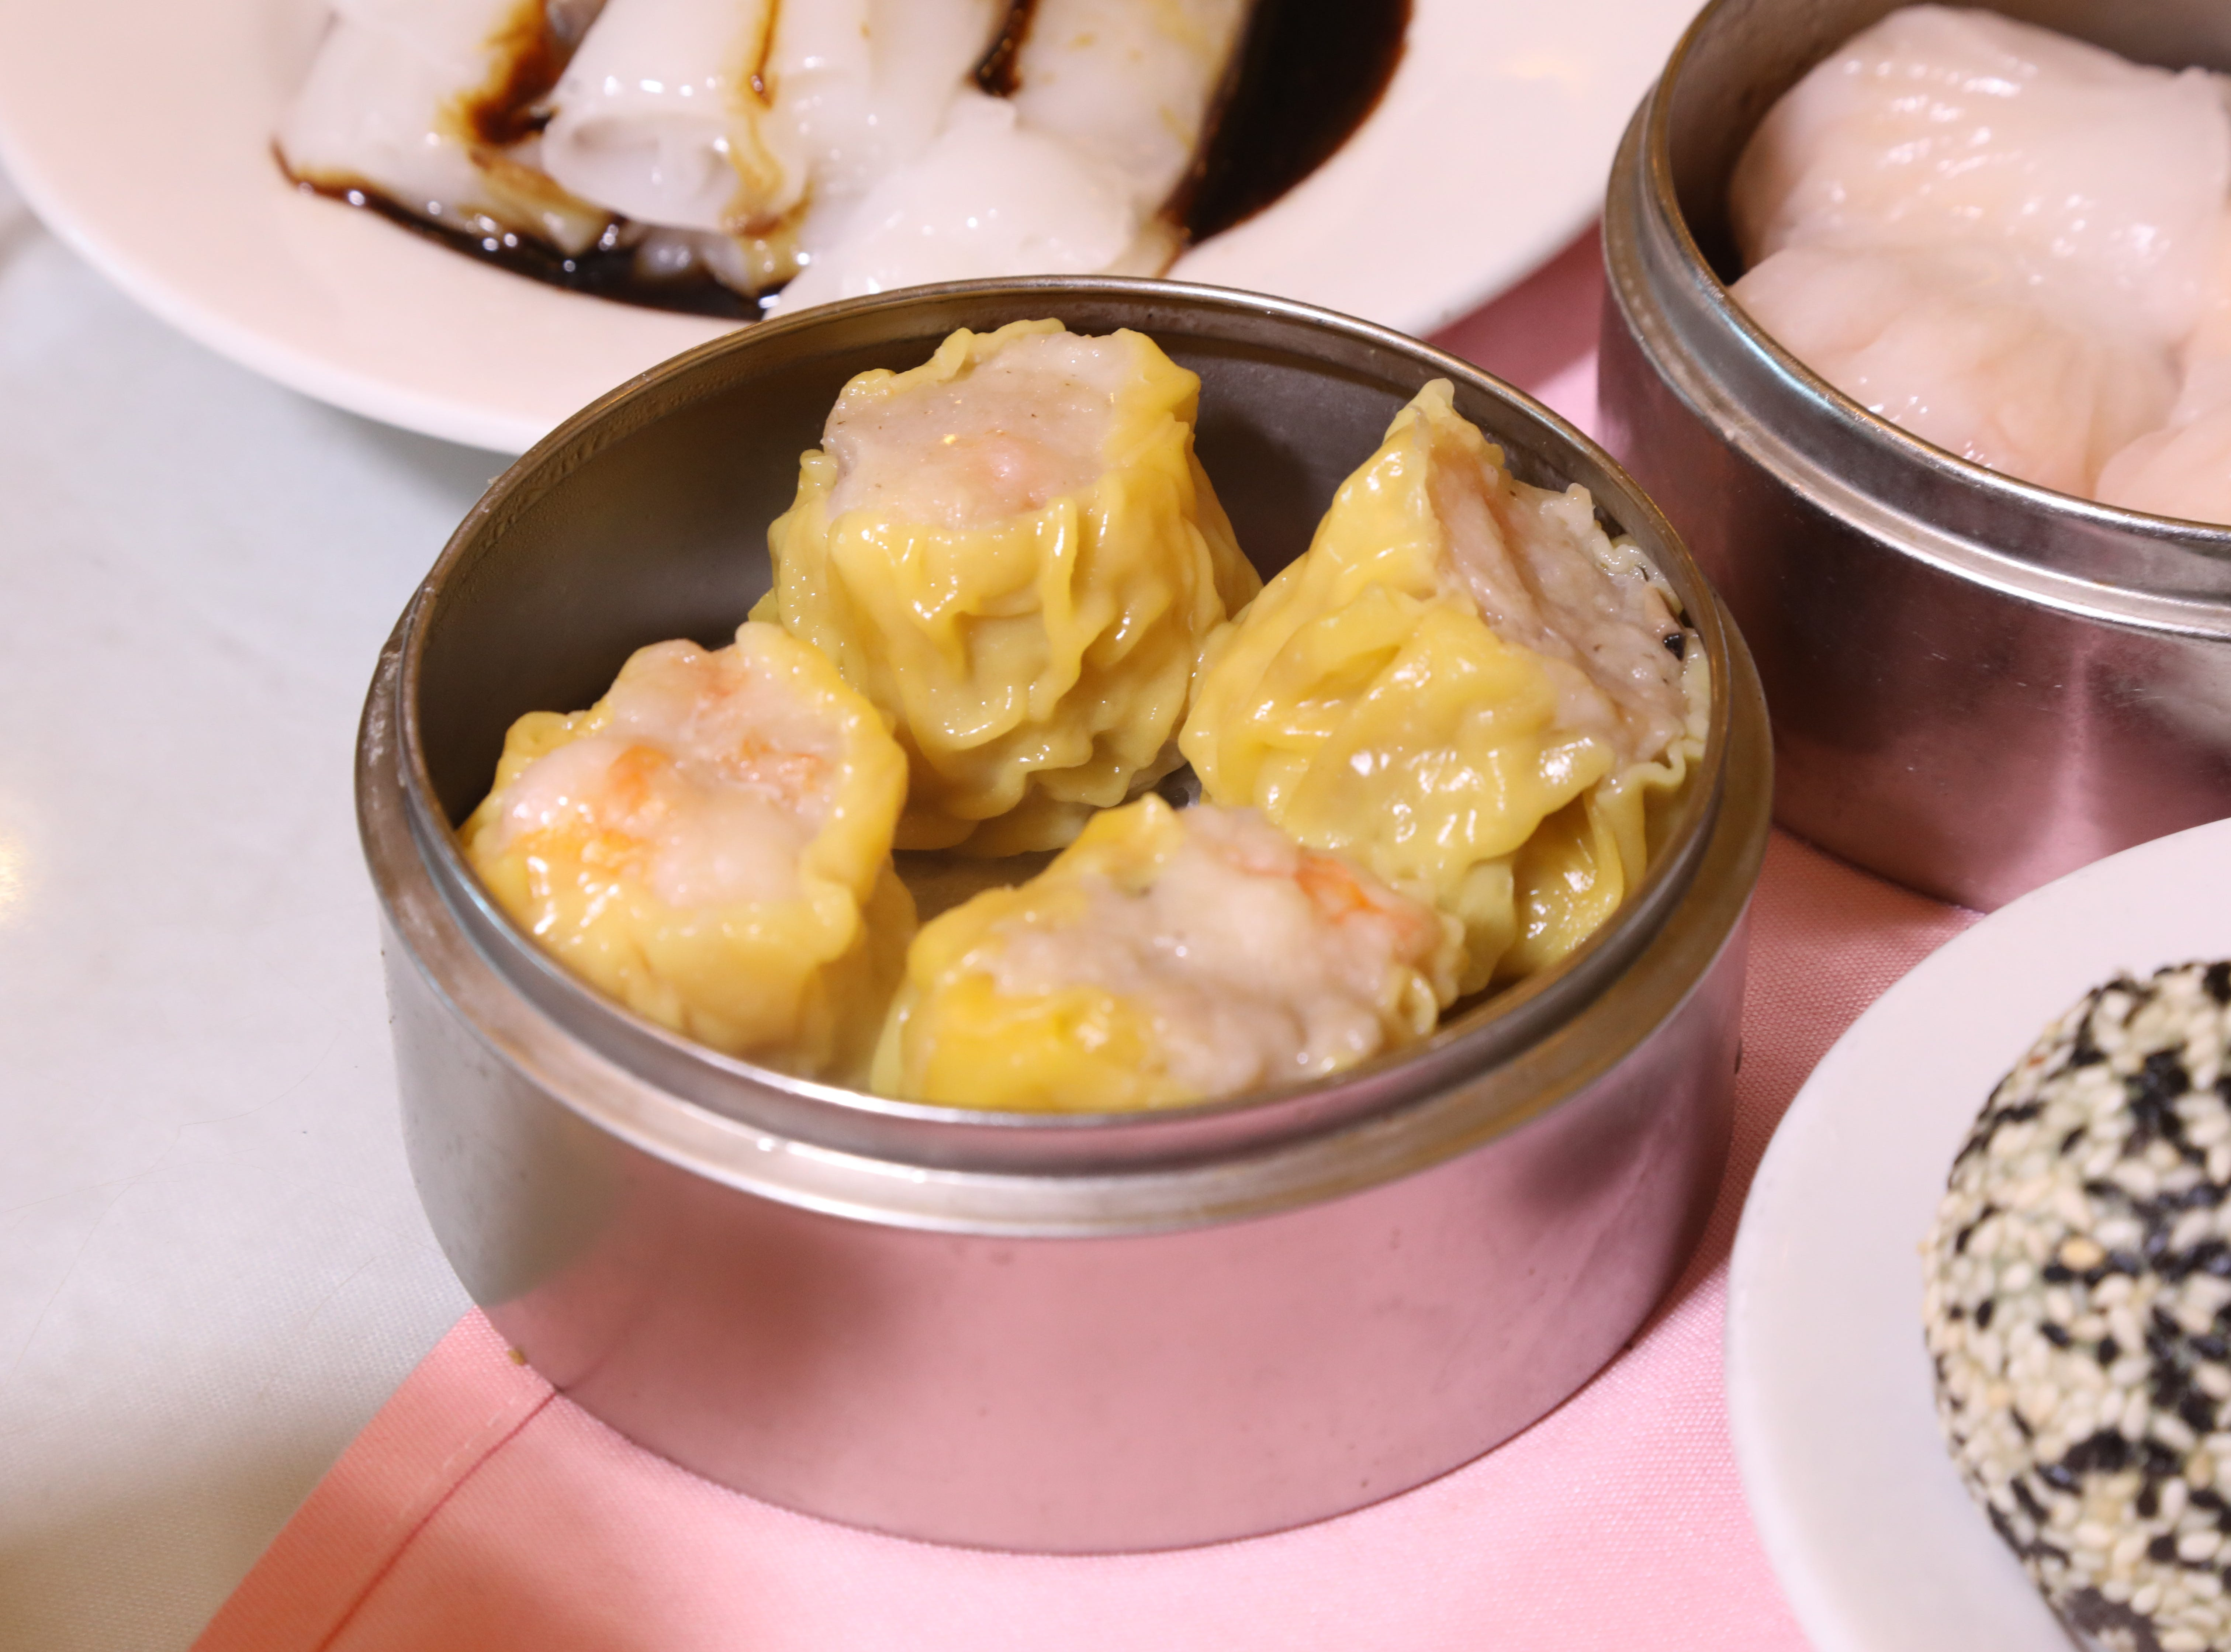 Siu Mai is shrimp and pork wrapped in a wonton, part of a large selection of appetizers at Noodle Wong.